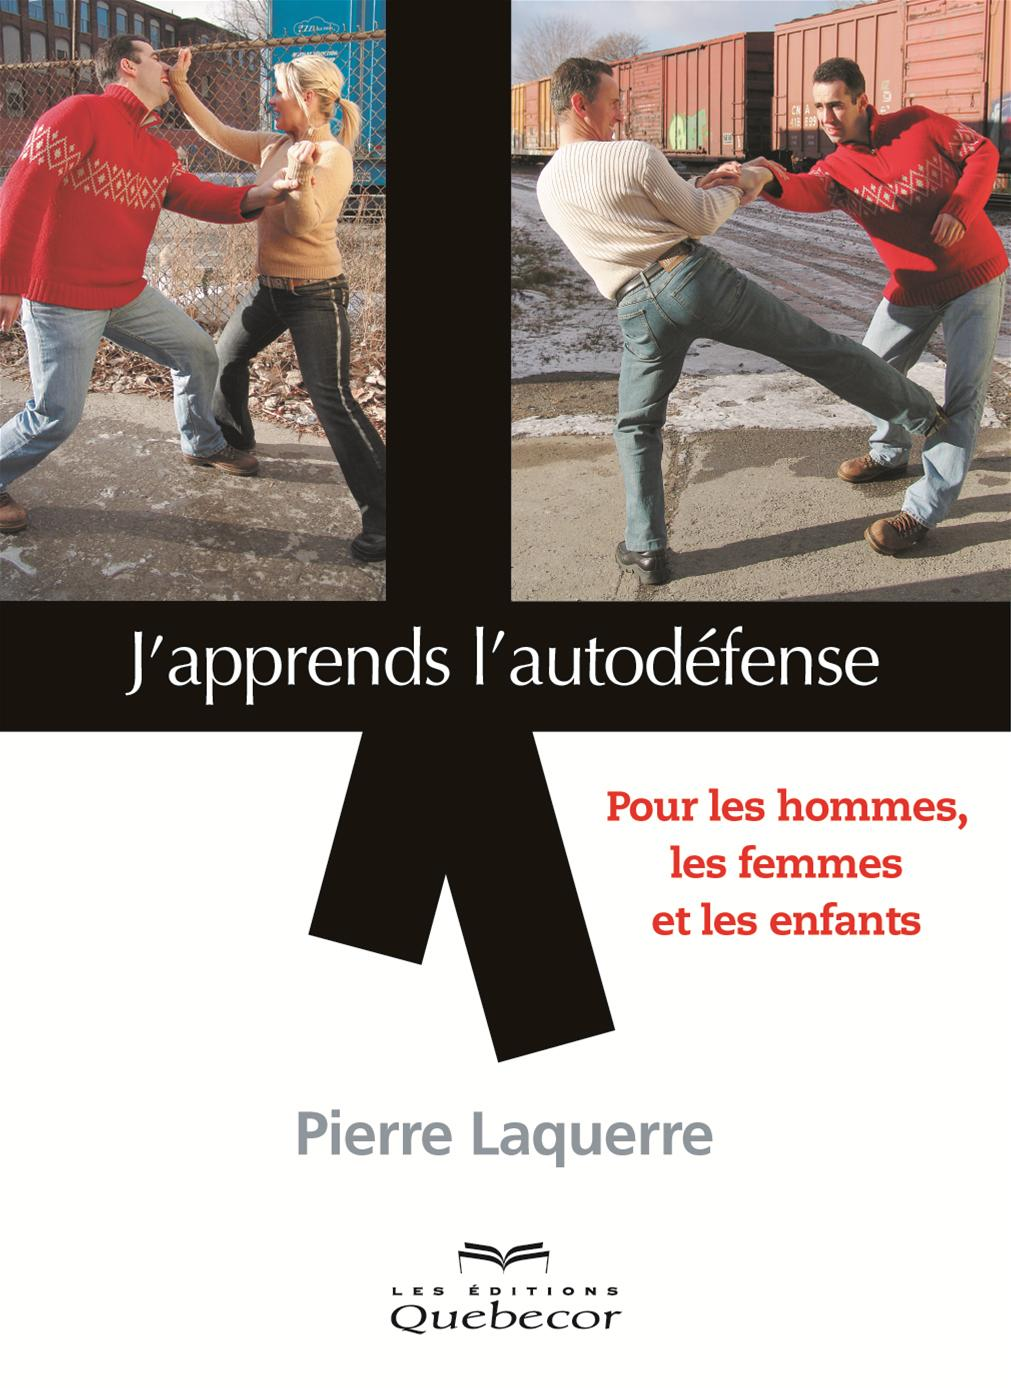 J'apprends l'autodéfense